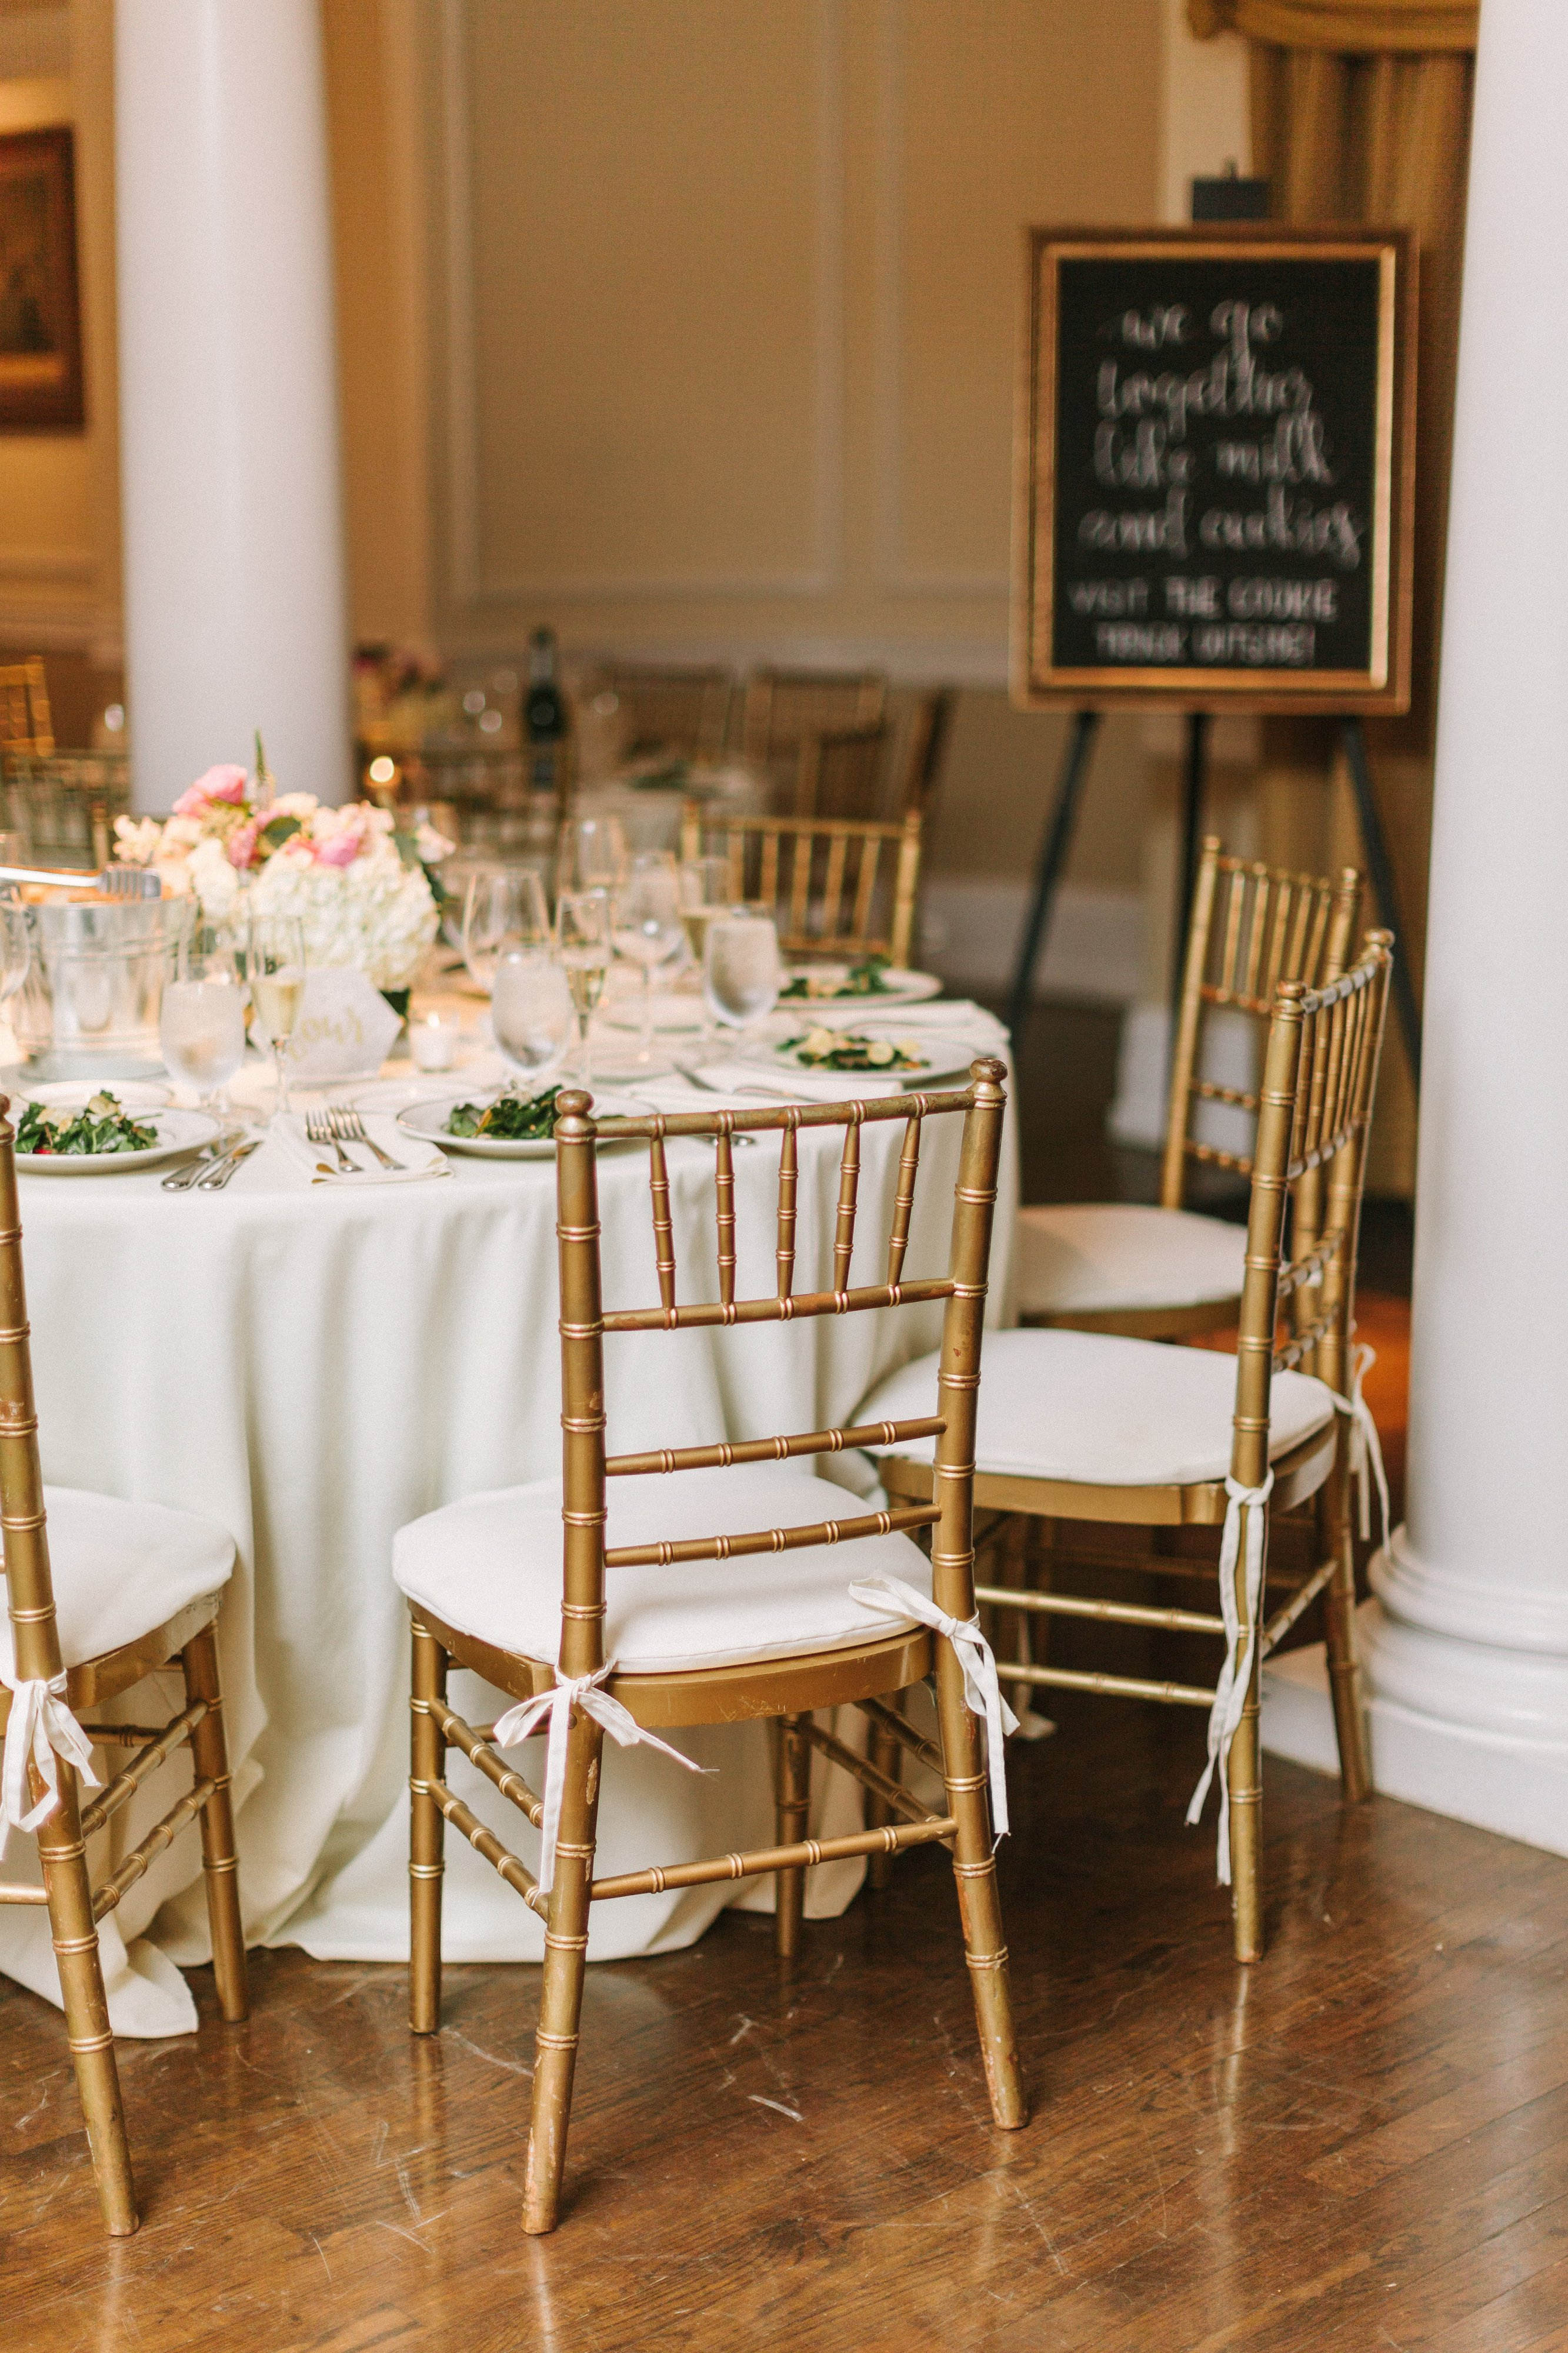 Kait Reinert, Ben Simmons, St. James Catholic Church, The Whittemore House, Megan Chase, Penn State, George Washington University, pizza, Pizzeria Paradiso, Country Club at Woodmore, Hawaii, BHLDN, Floral & Bloom Designs, Bachelor Boys Band, Cookies, Food Truck, Captain Cookie and the Milkman